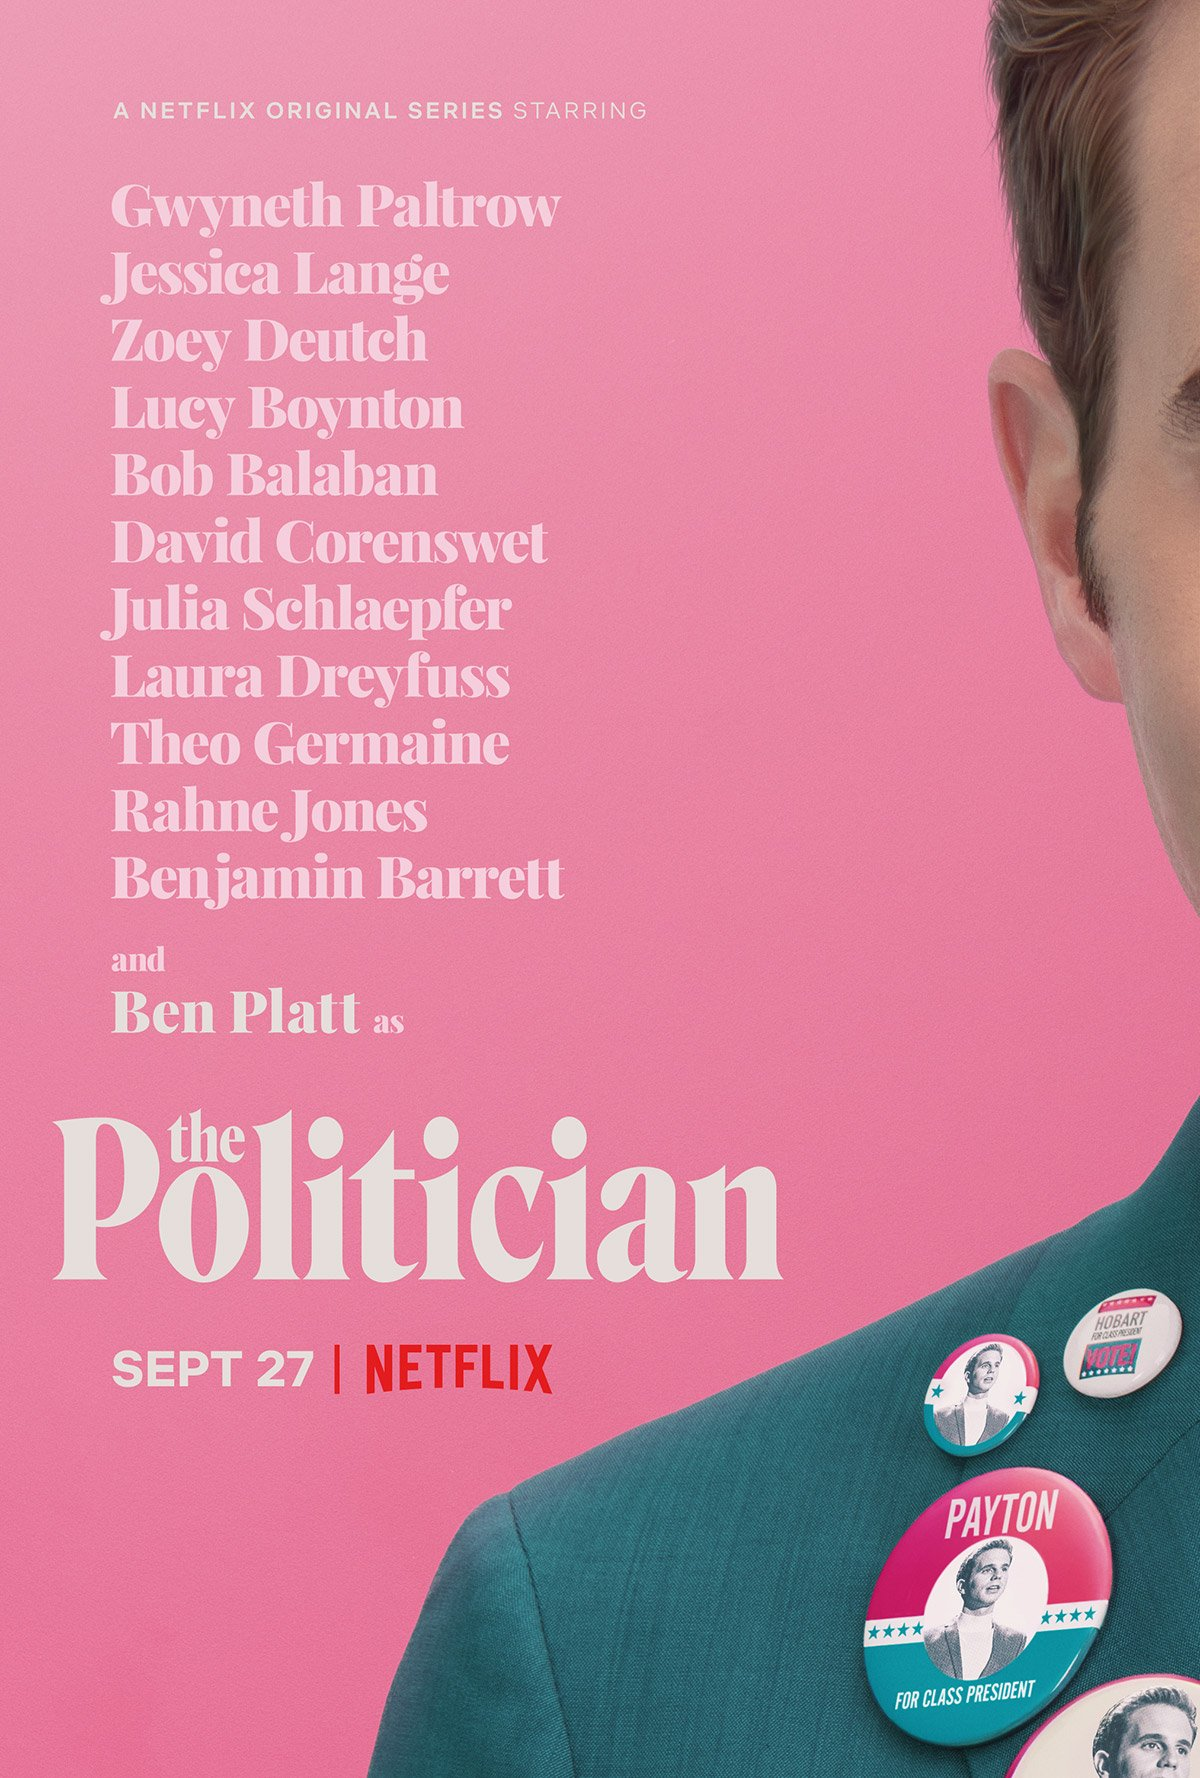 Netflix's The Politician